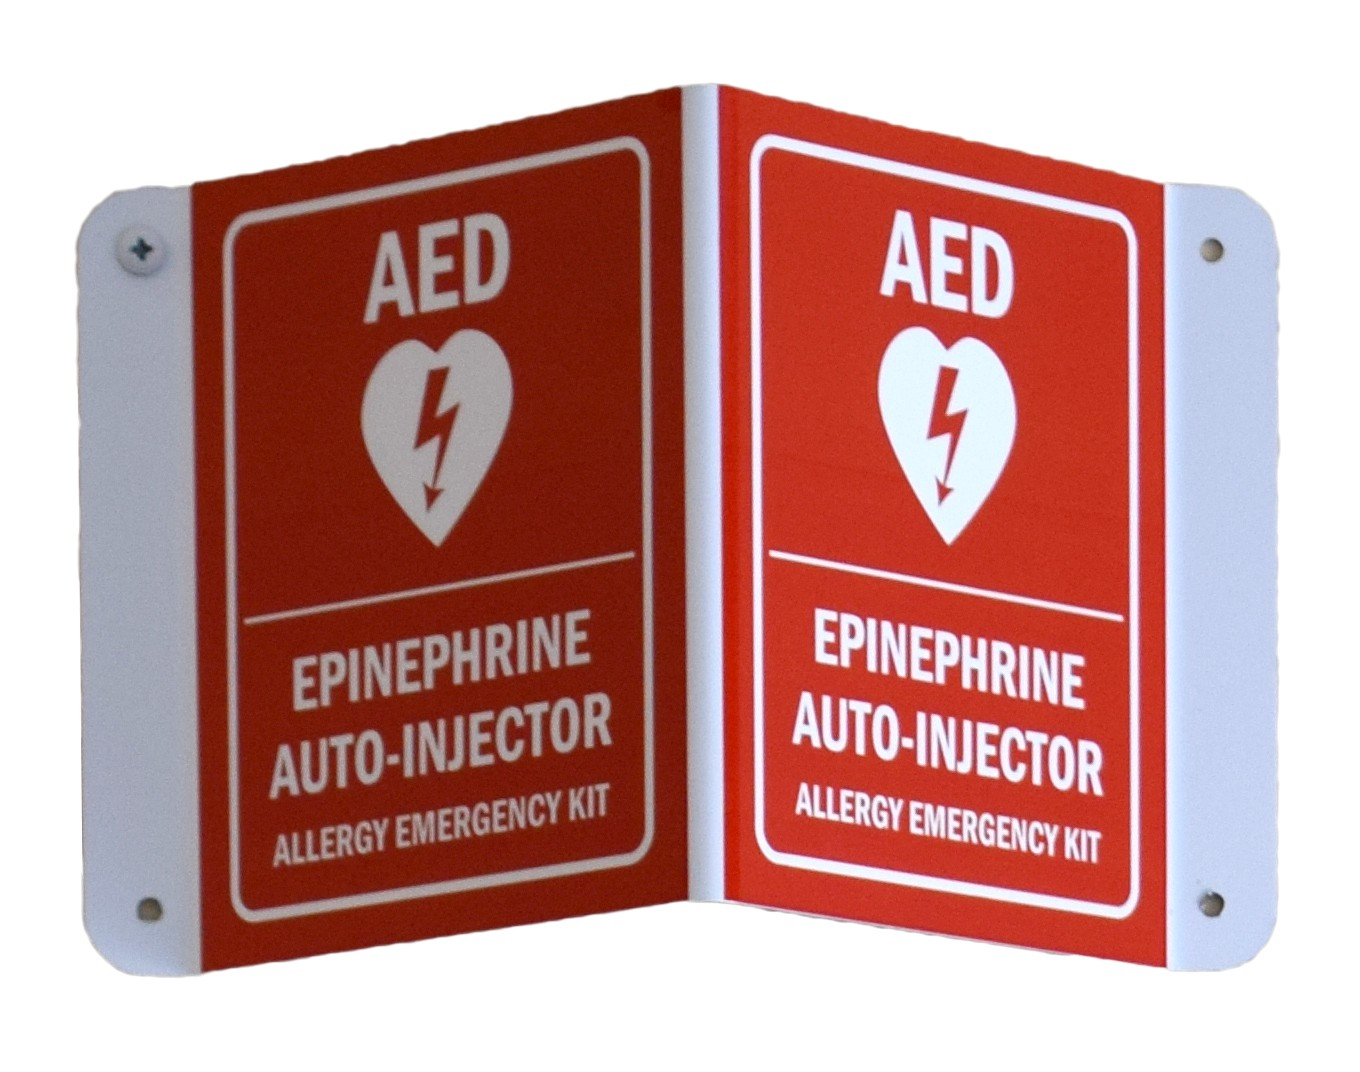 Epinephrine / AED Sign